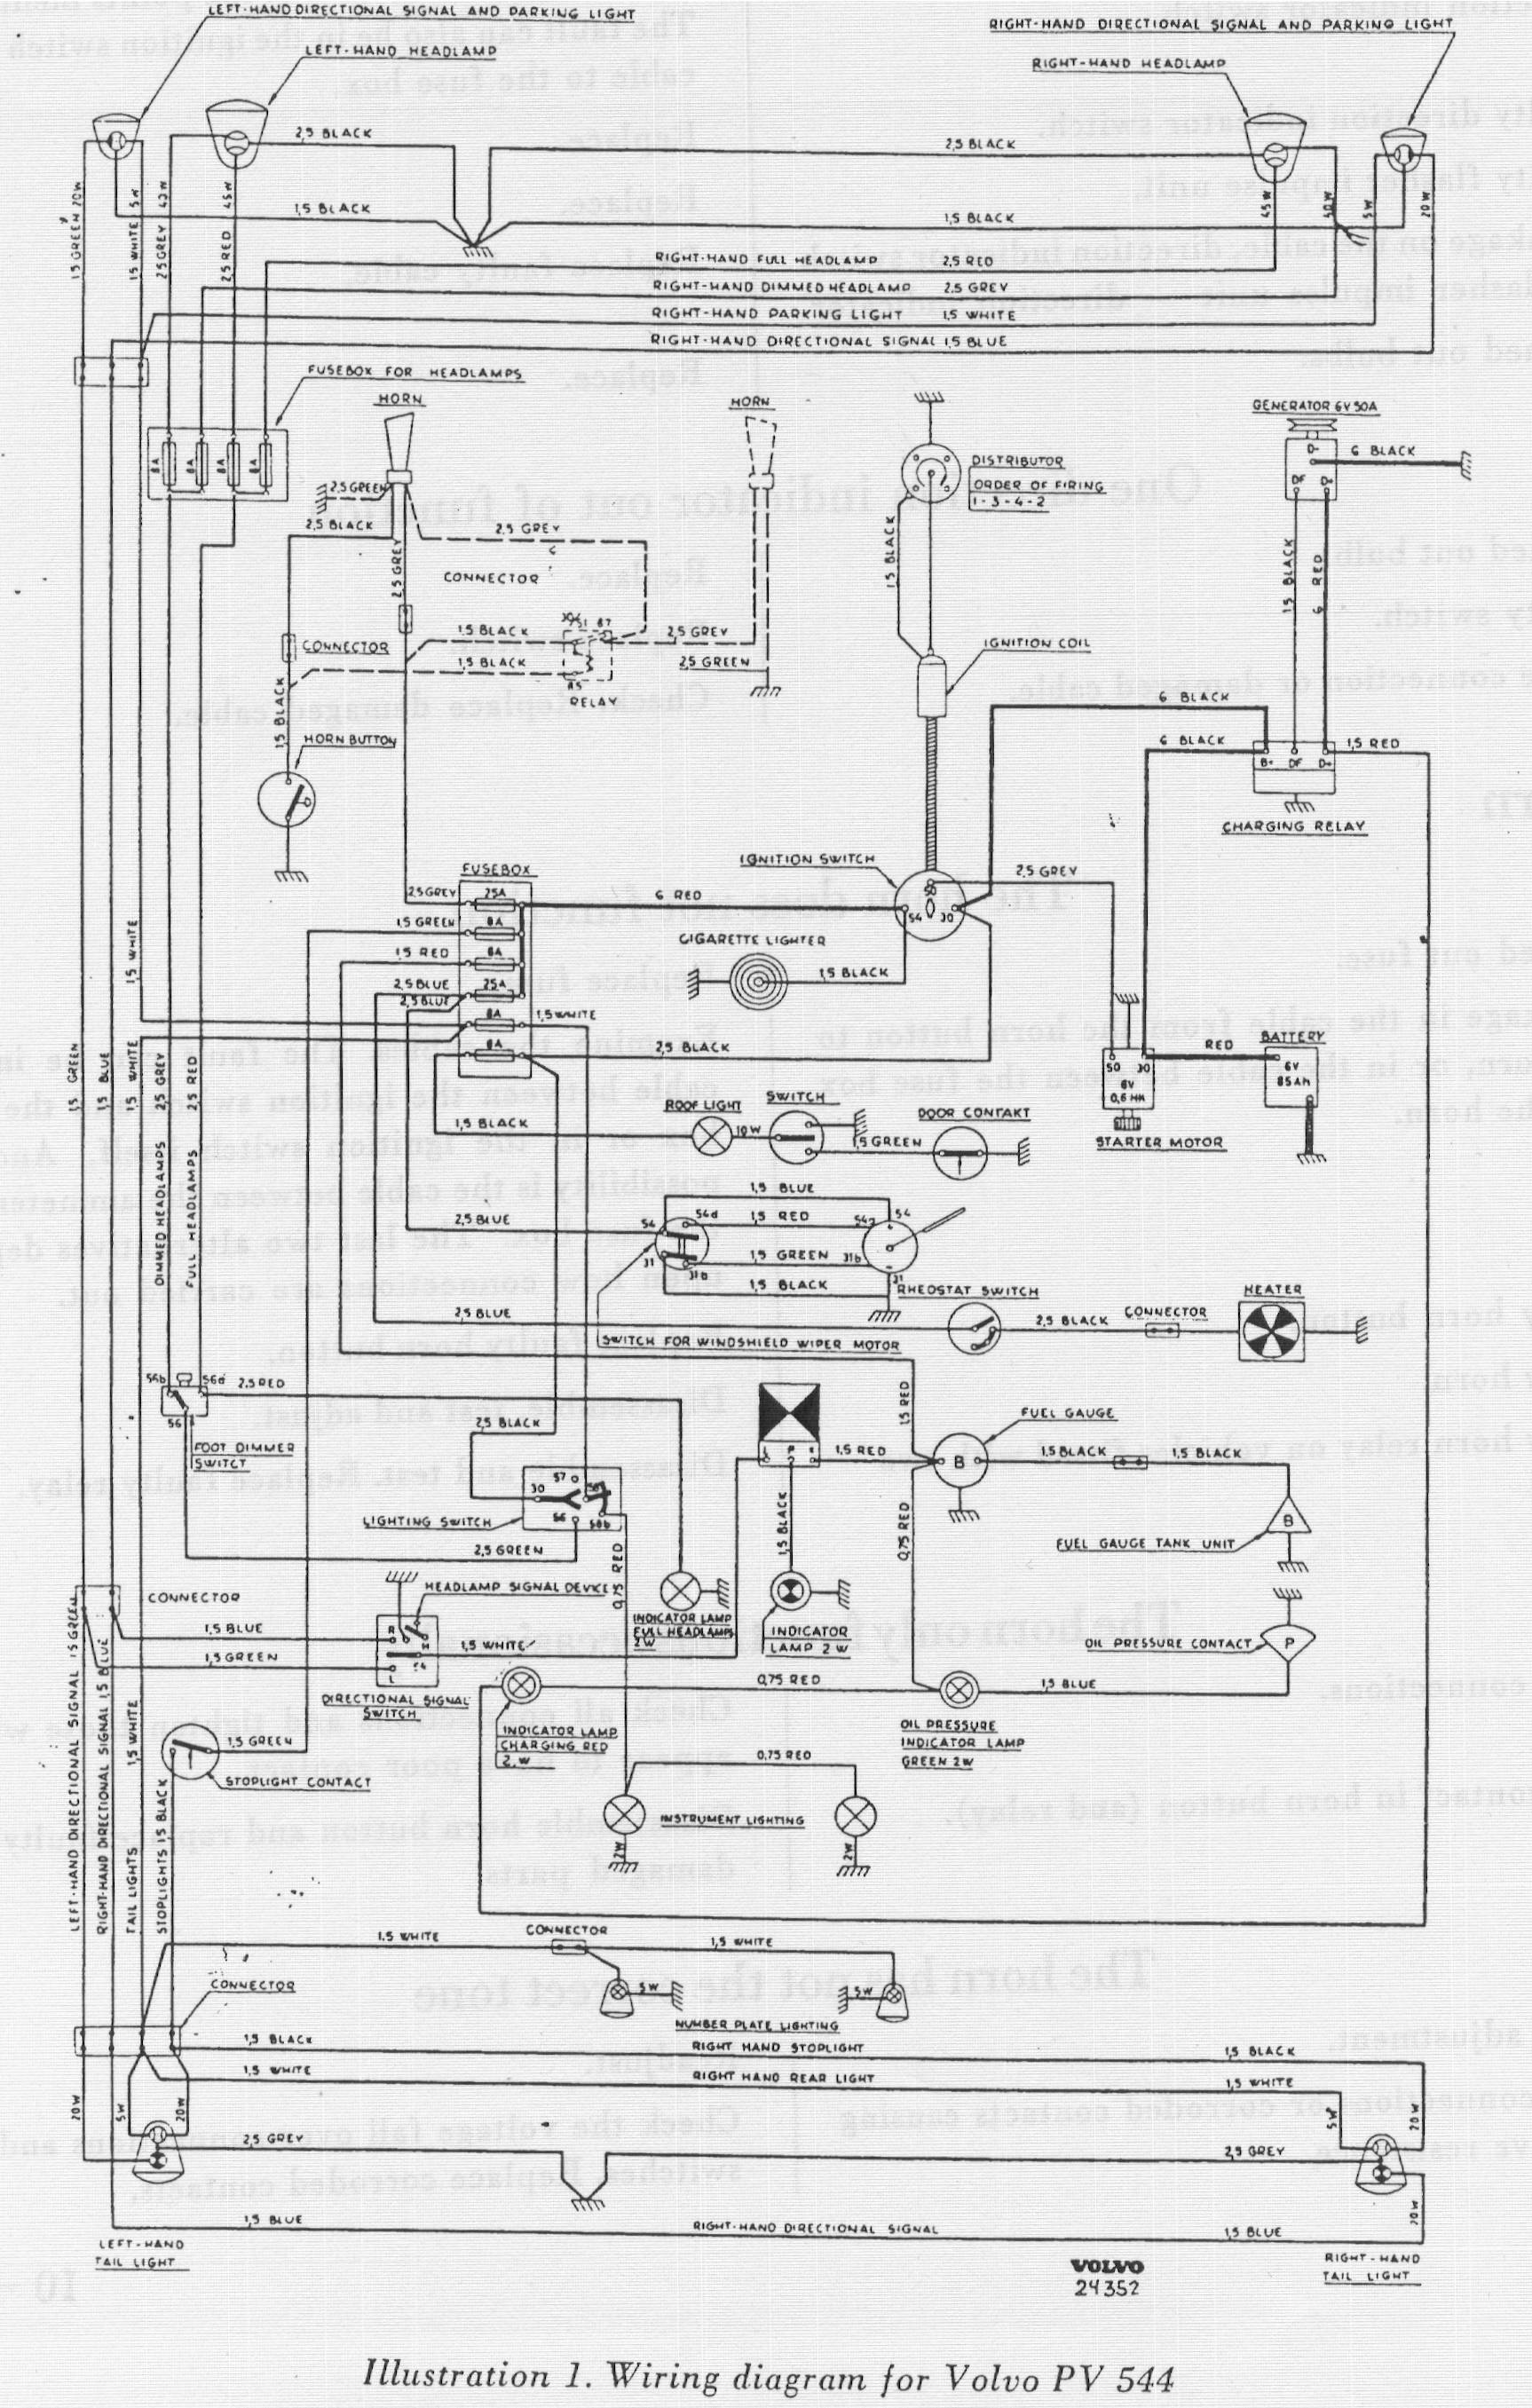 sw em emergency flasher 444 6v wiring diagram